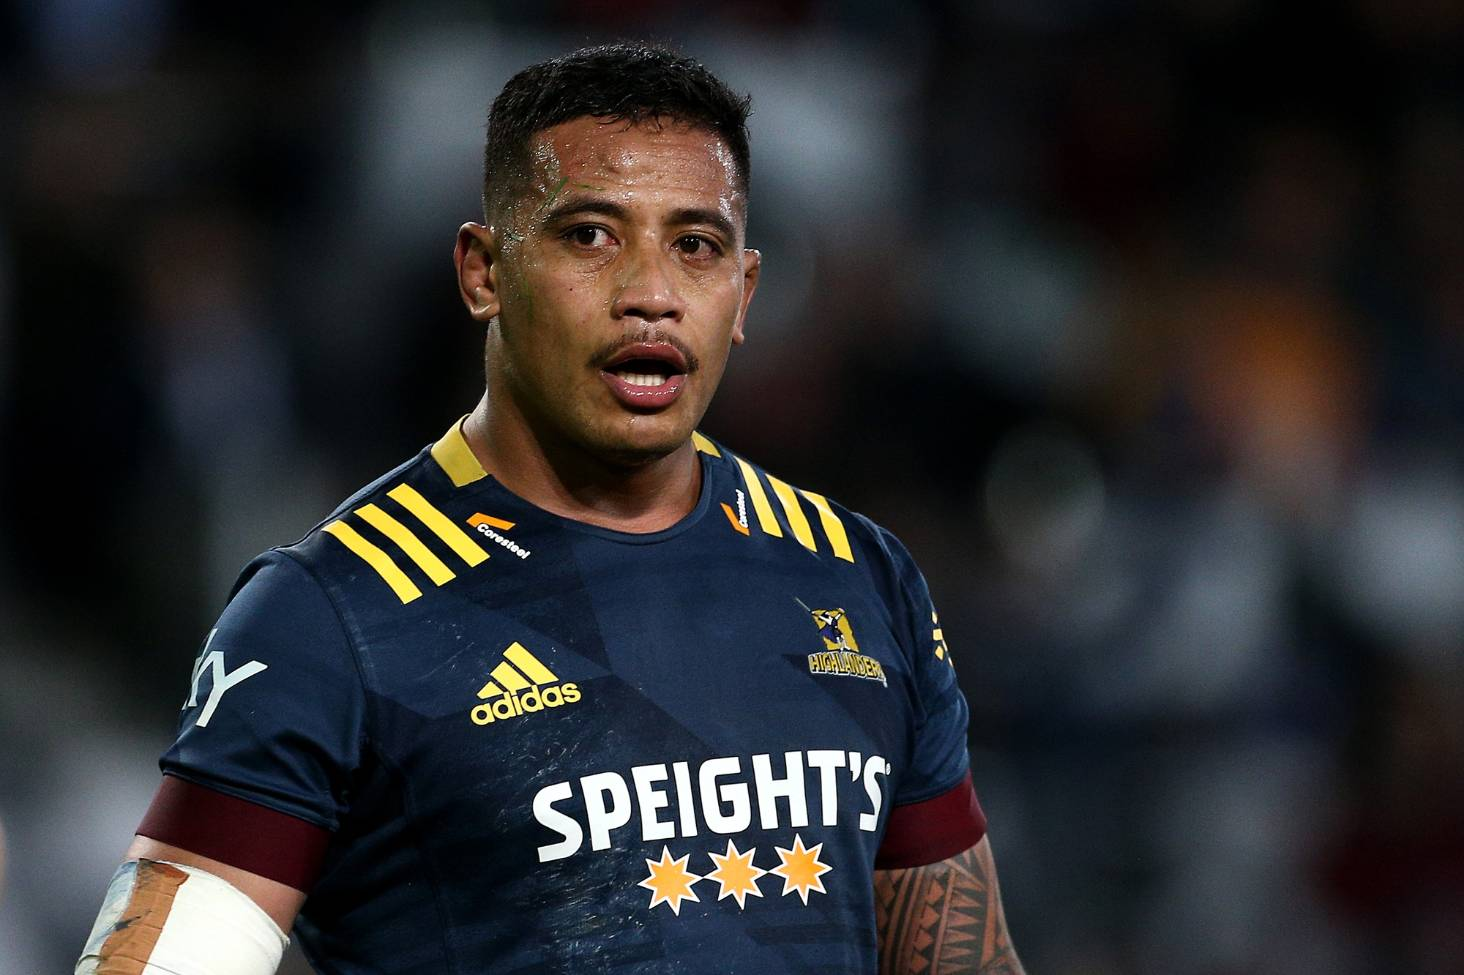 Super Rugby: All Black Shannon Frizell returns to Highlanders side to face  Force | Stuff.co.nz